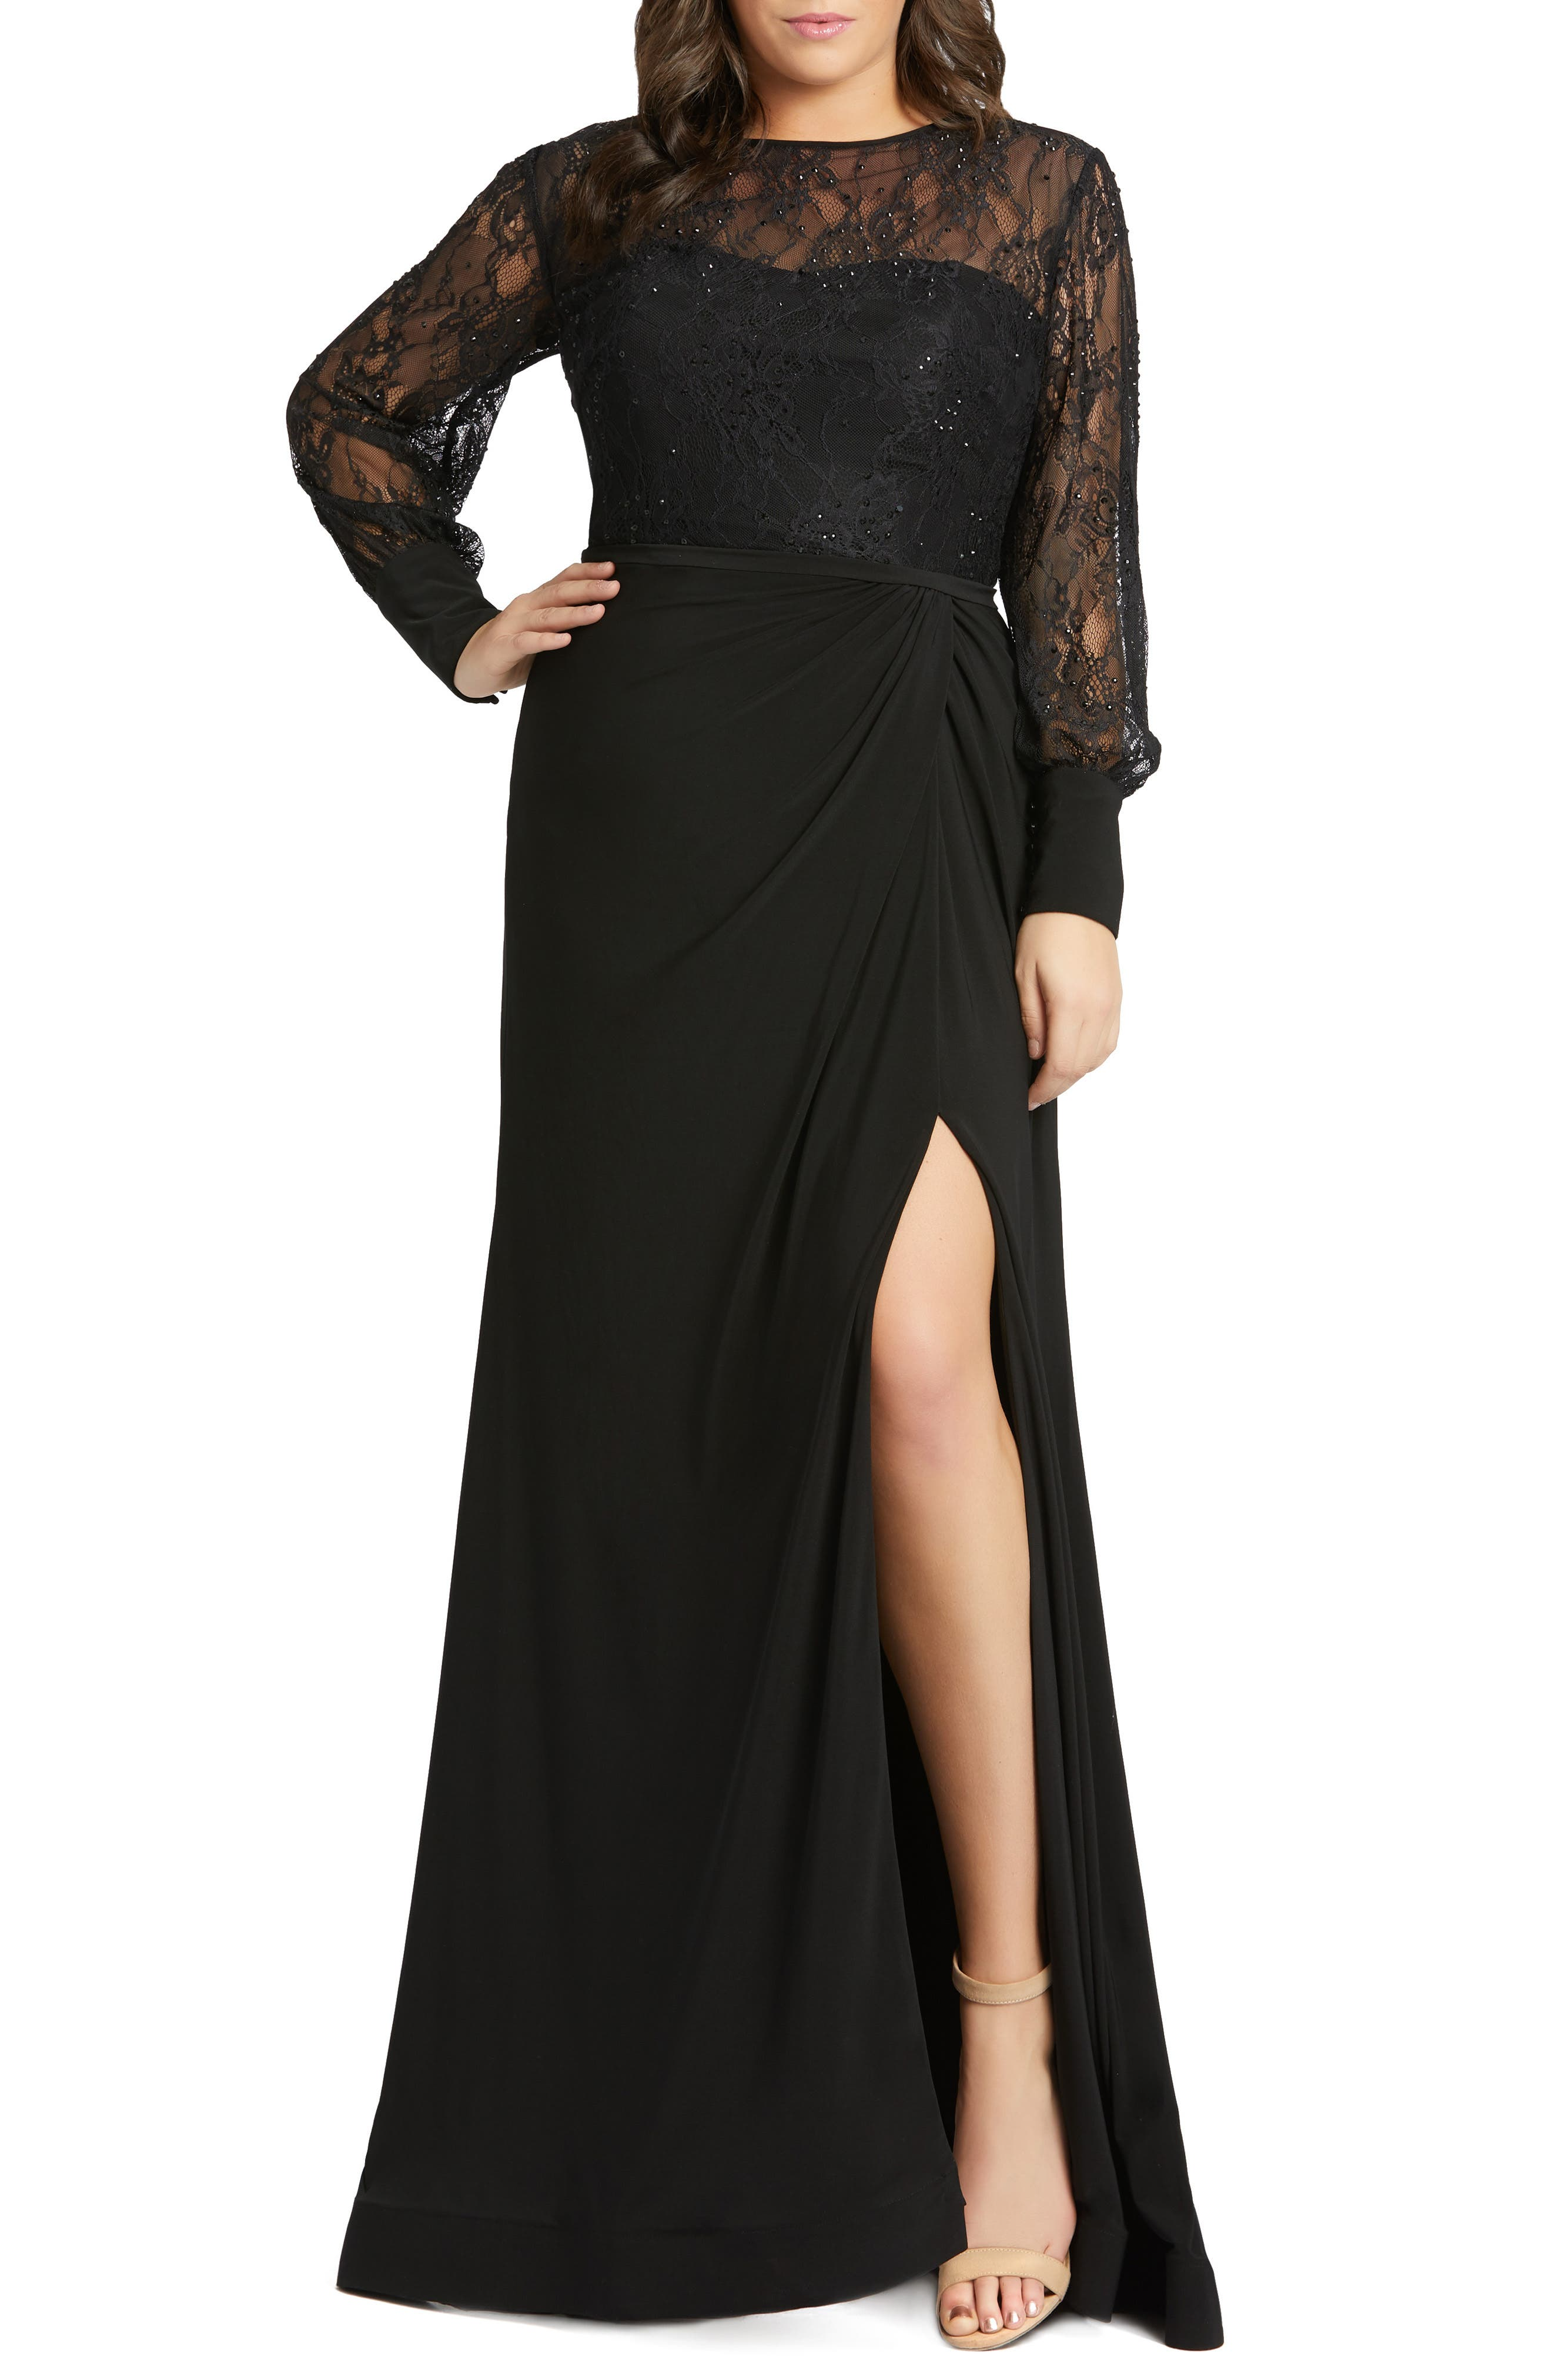 1950s Formal Dresses & Evening Gowns to Buy Plus Size Womens MAC Duggal Long Sleeve Lace Illusion Gown $398.00 AT vintagedancer.com